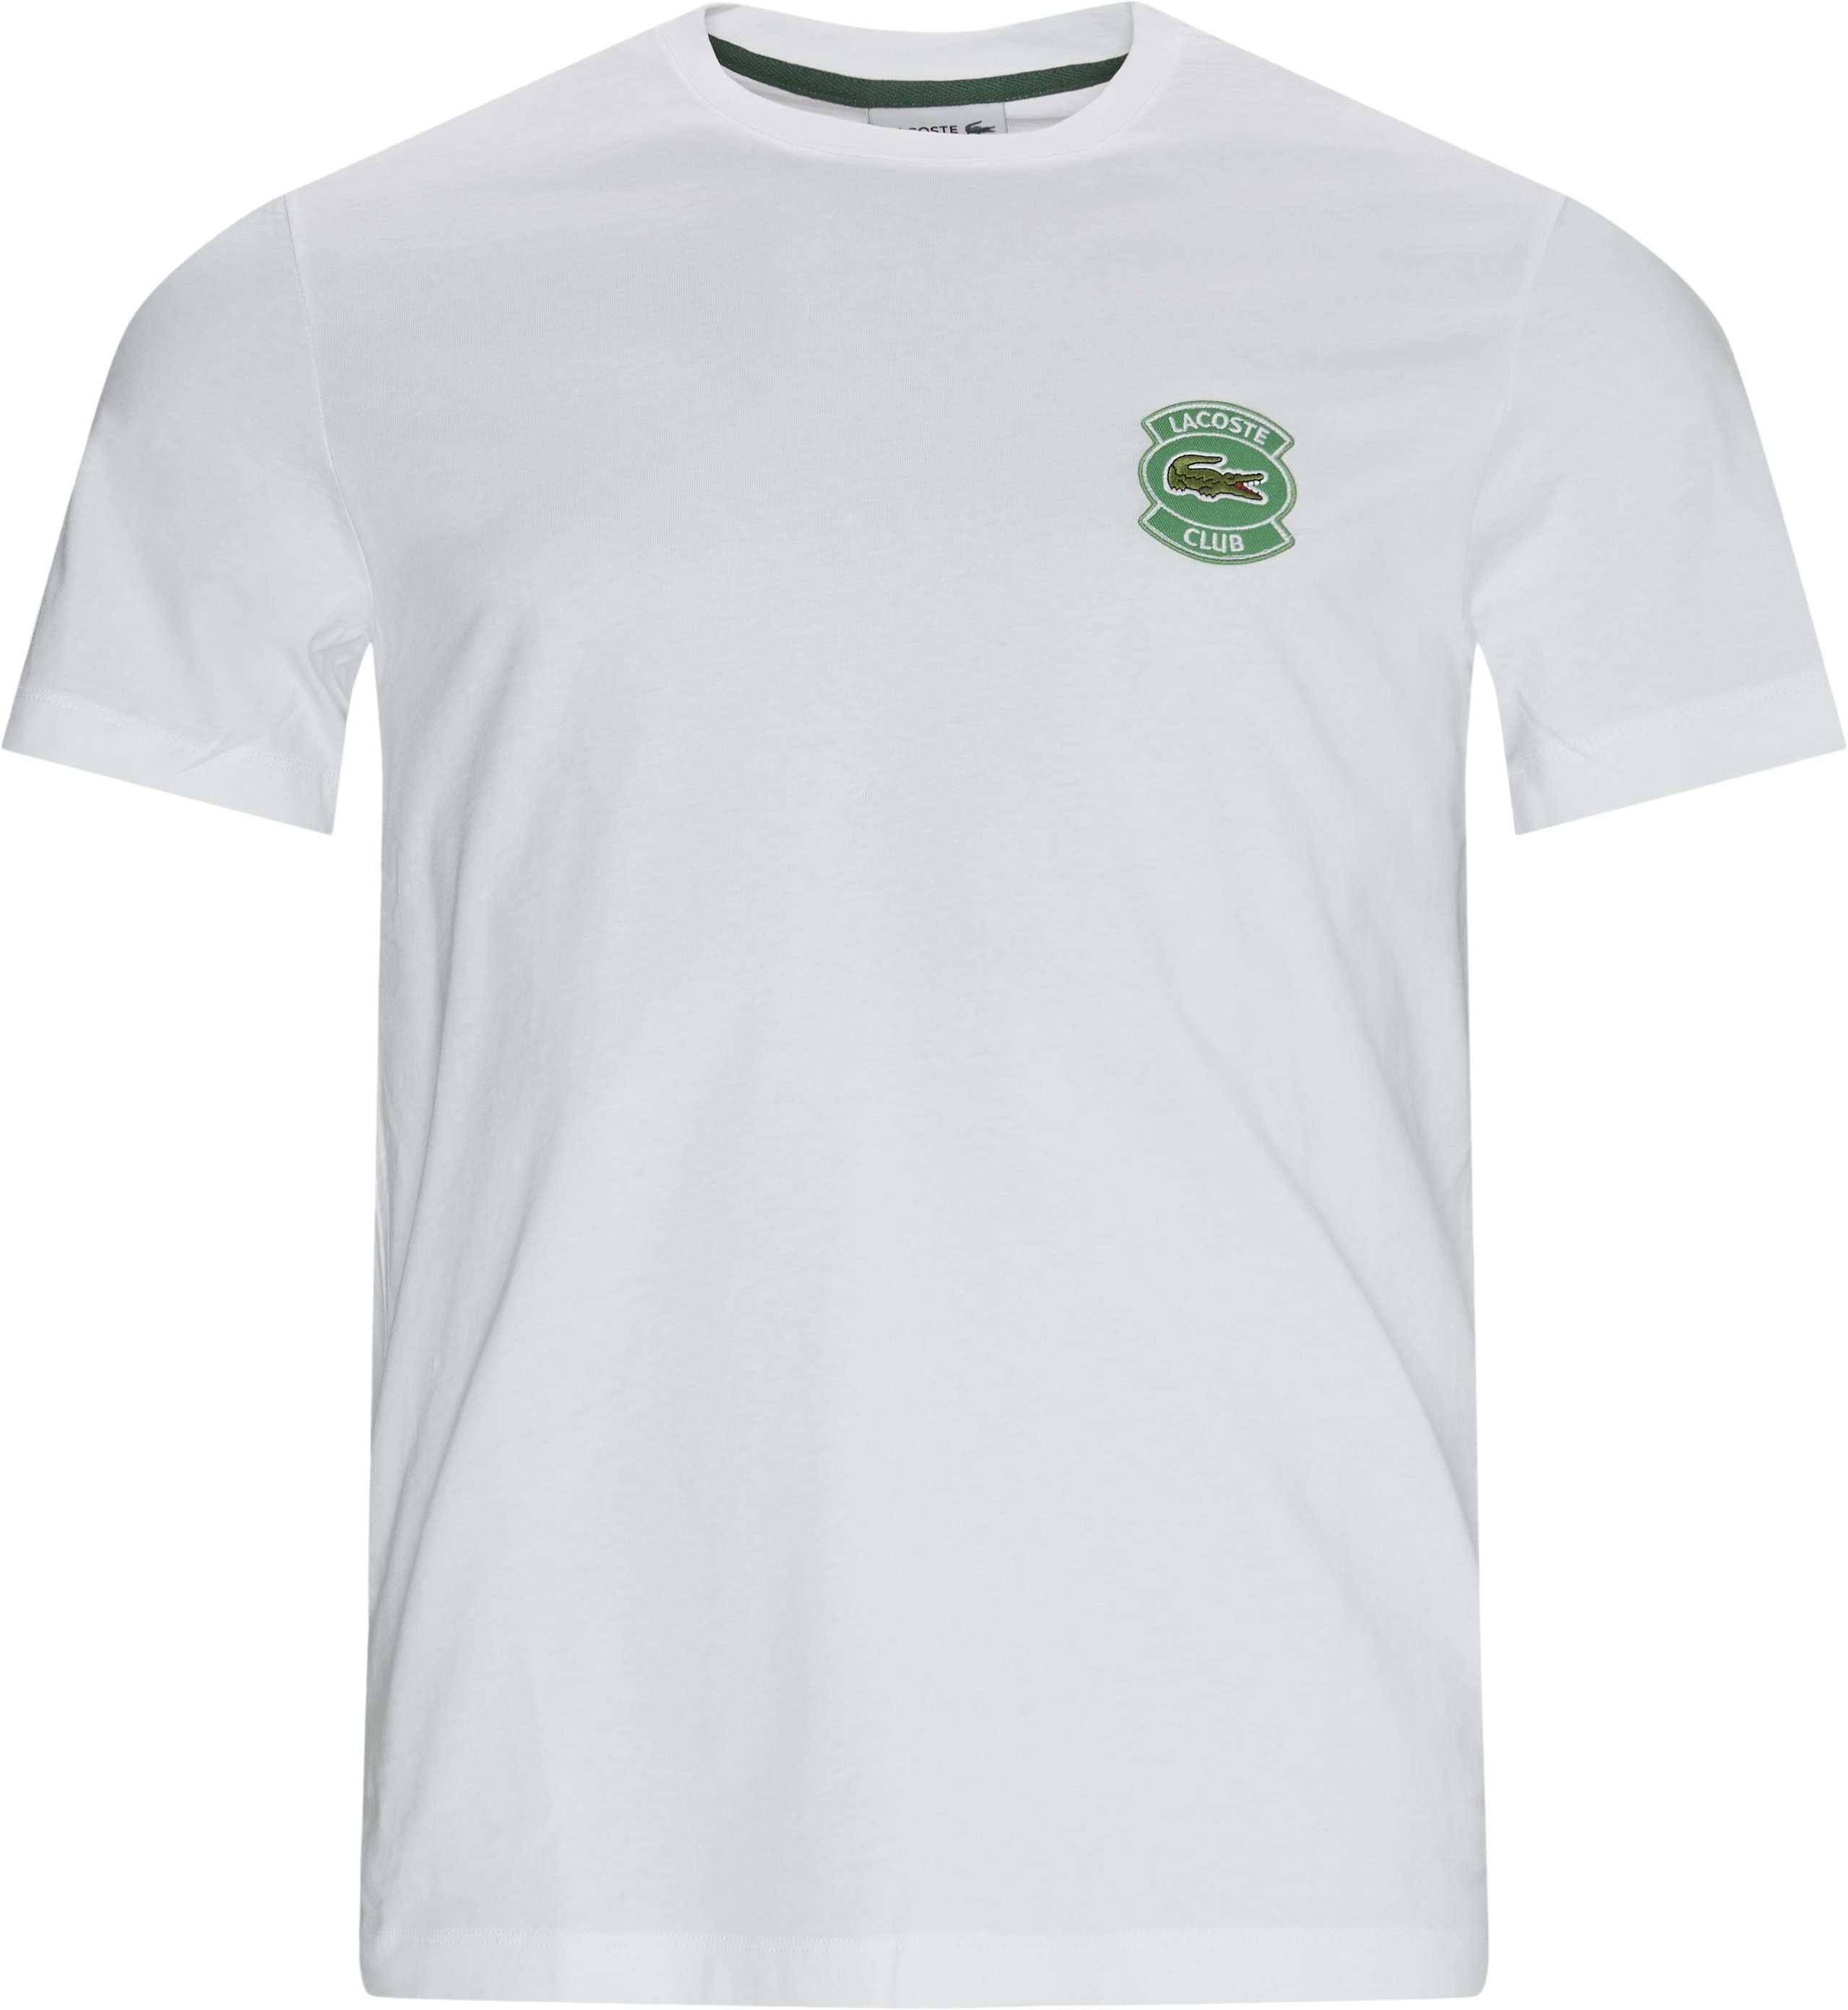 Logo Tee - T-shirts - Regular - White